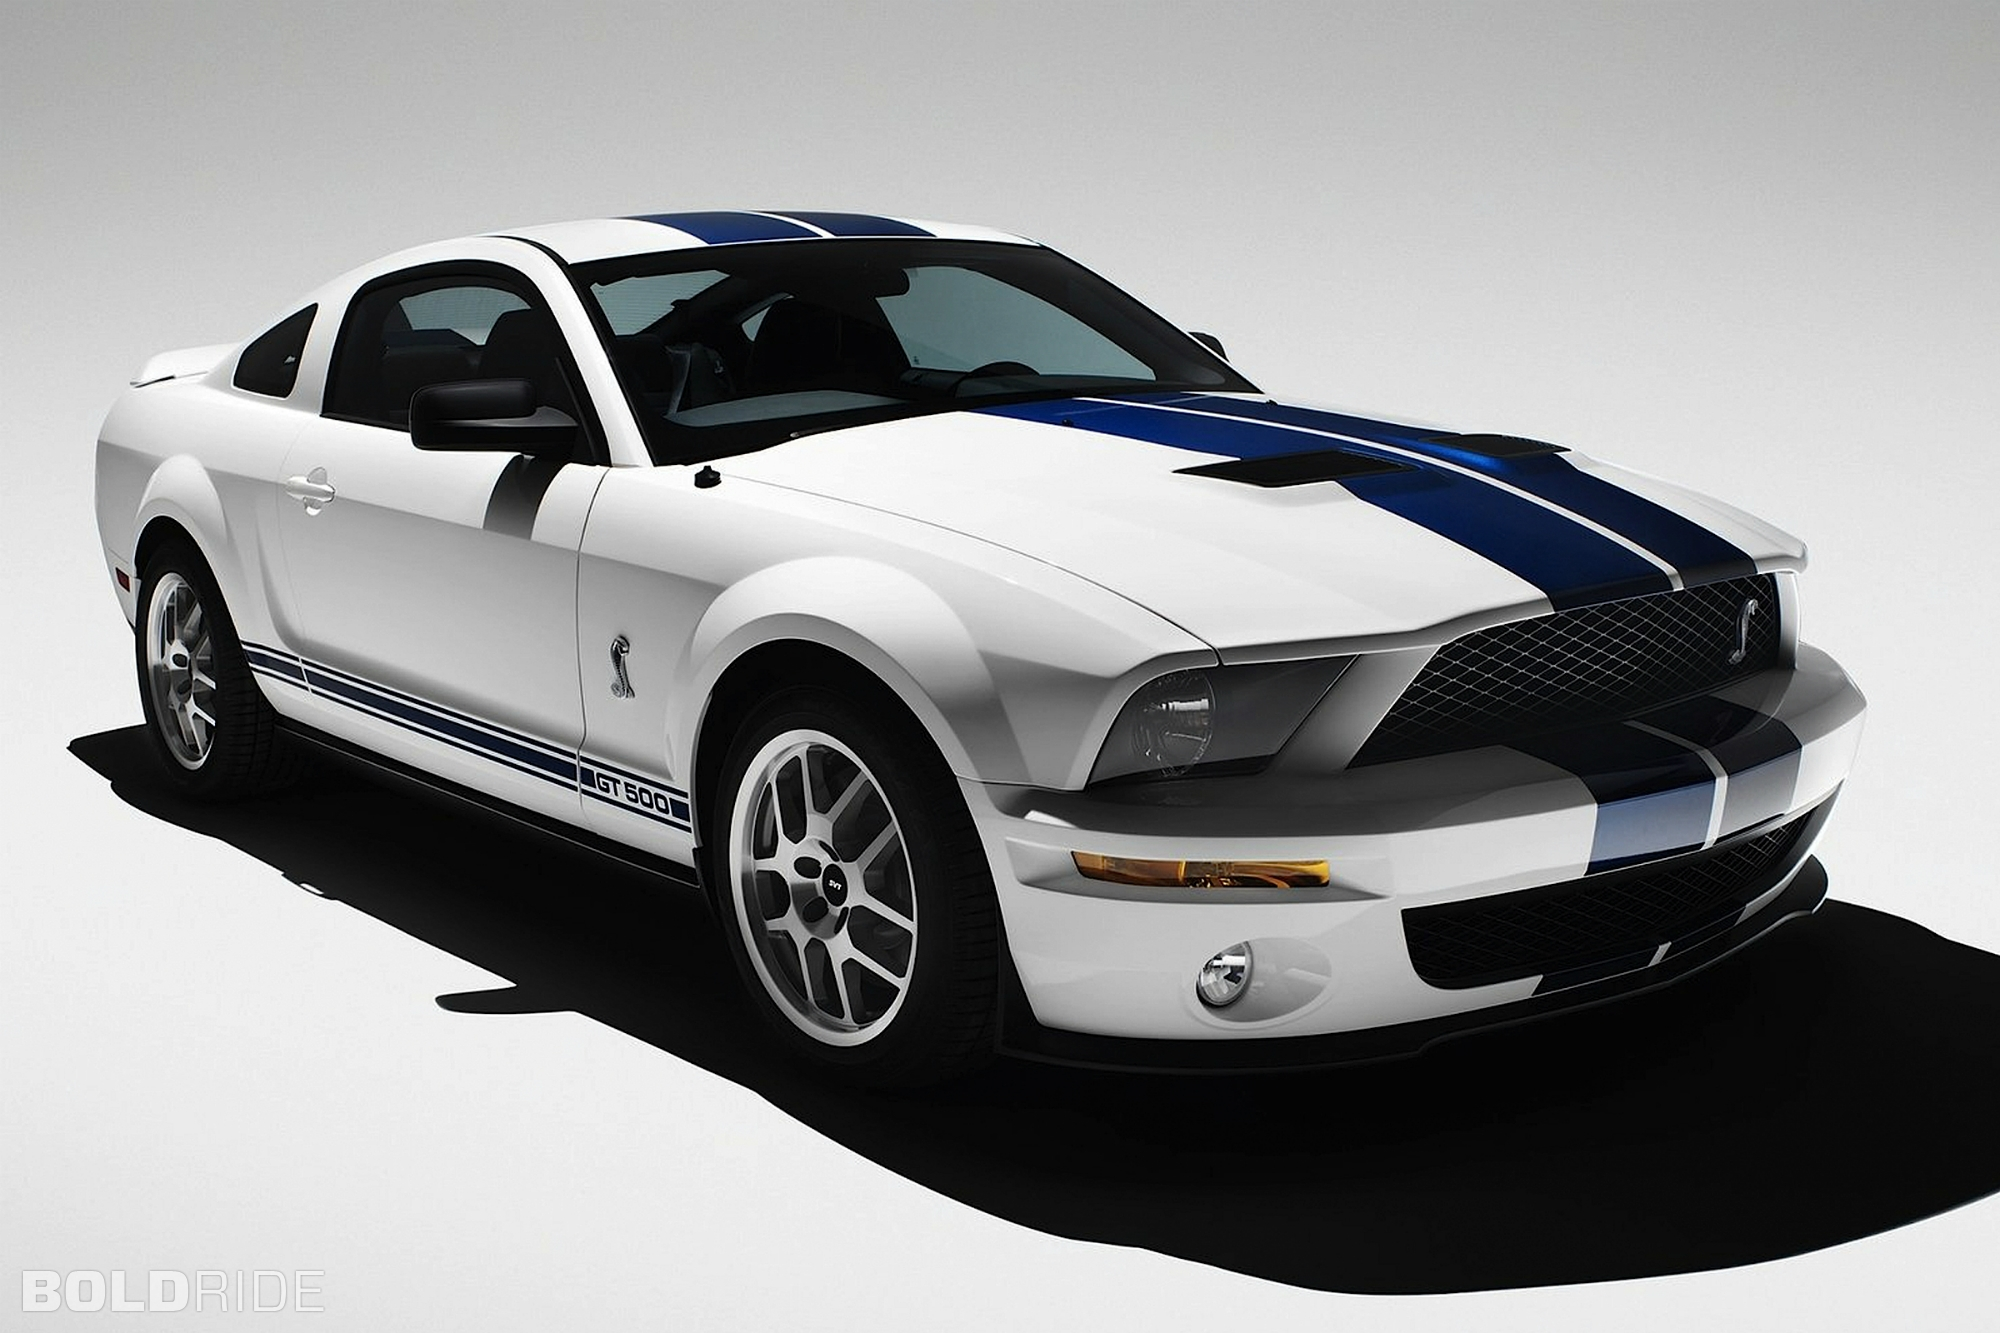 Ford Mustang #5